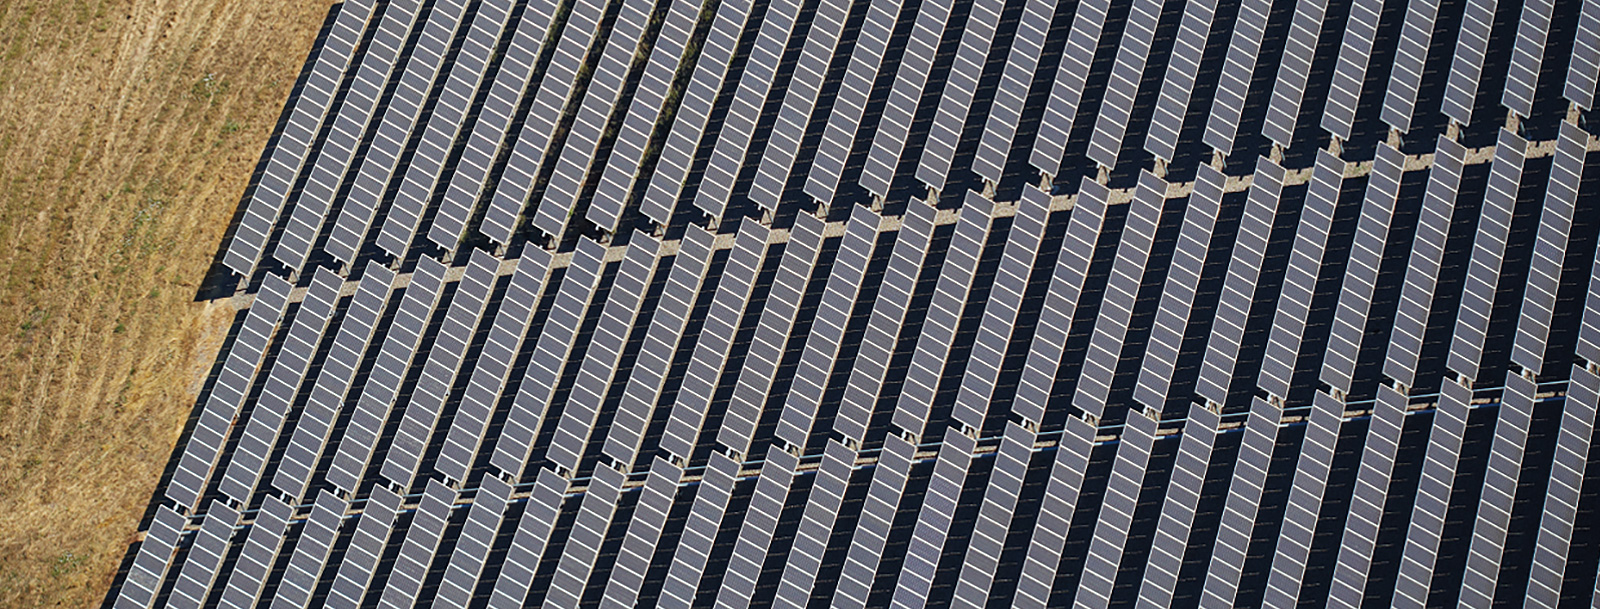 Massive array of solar panels